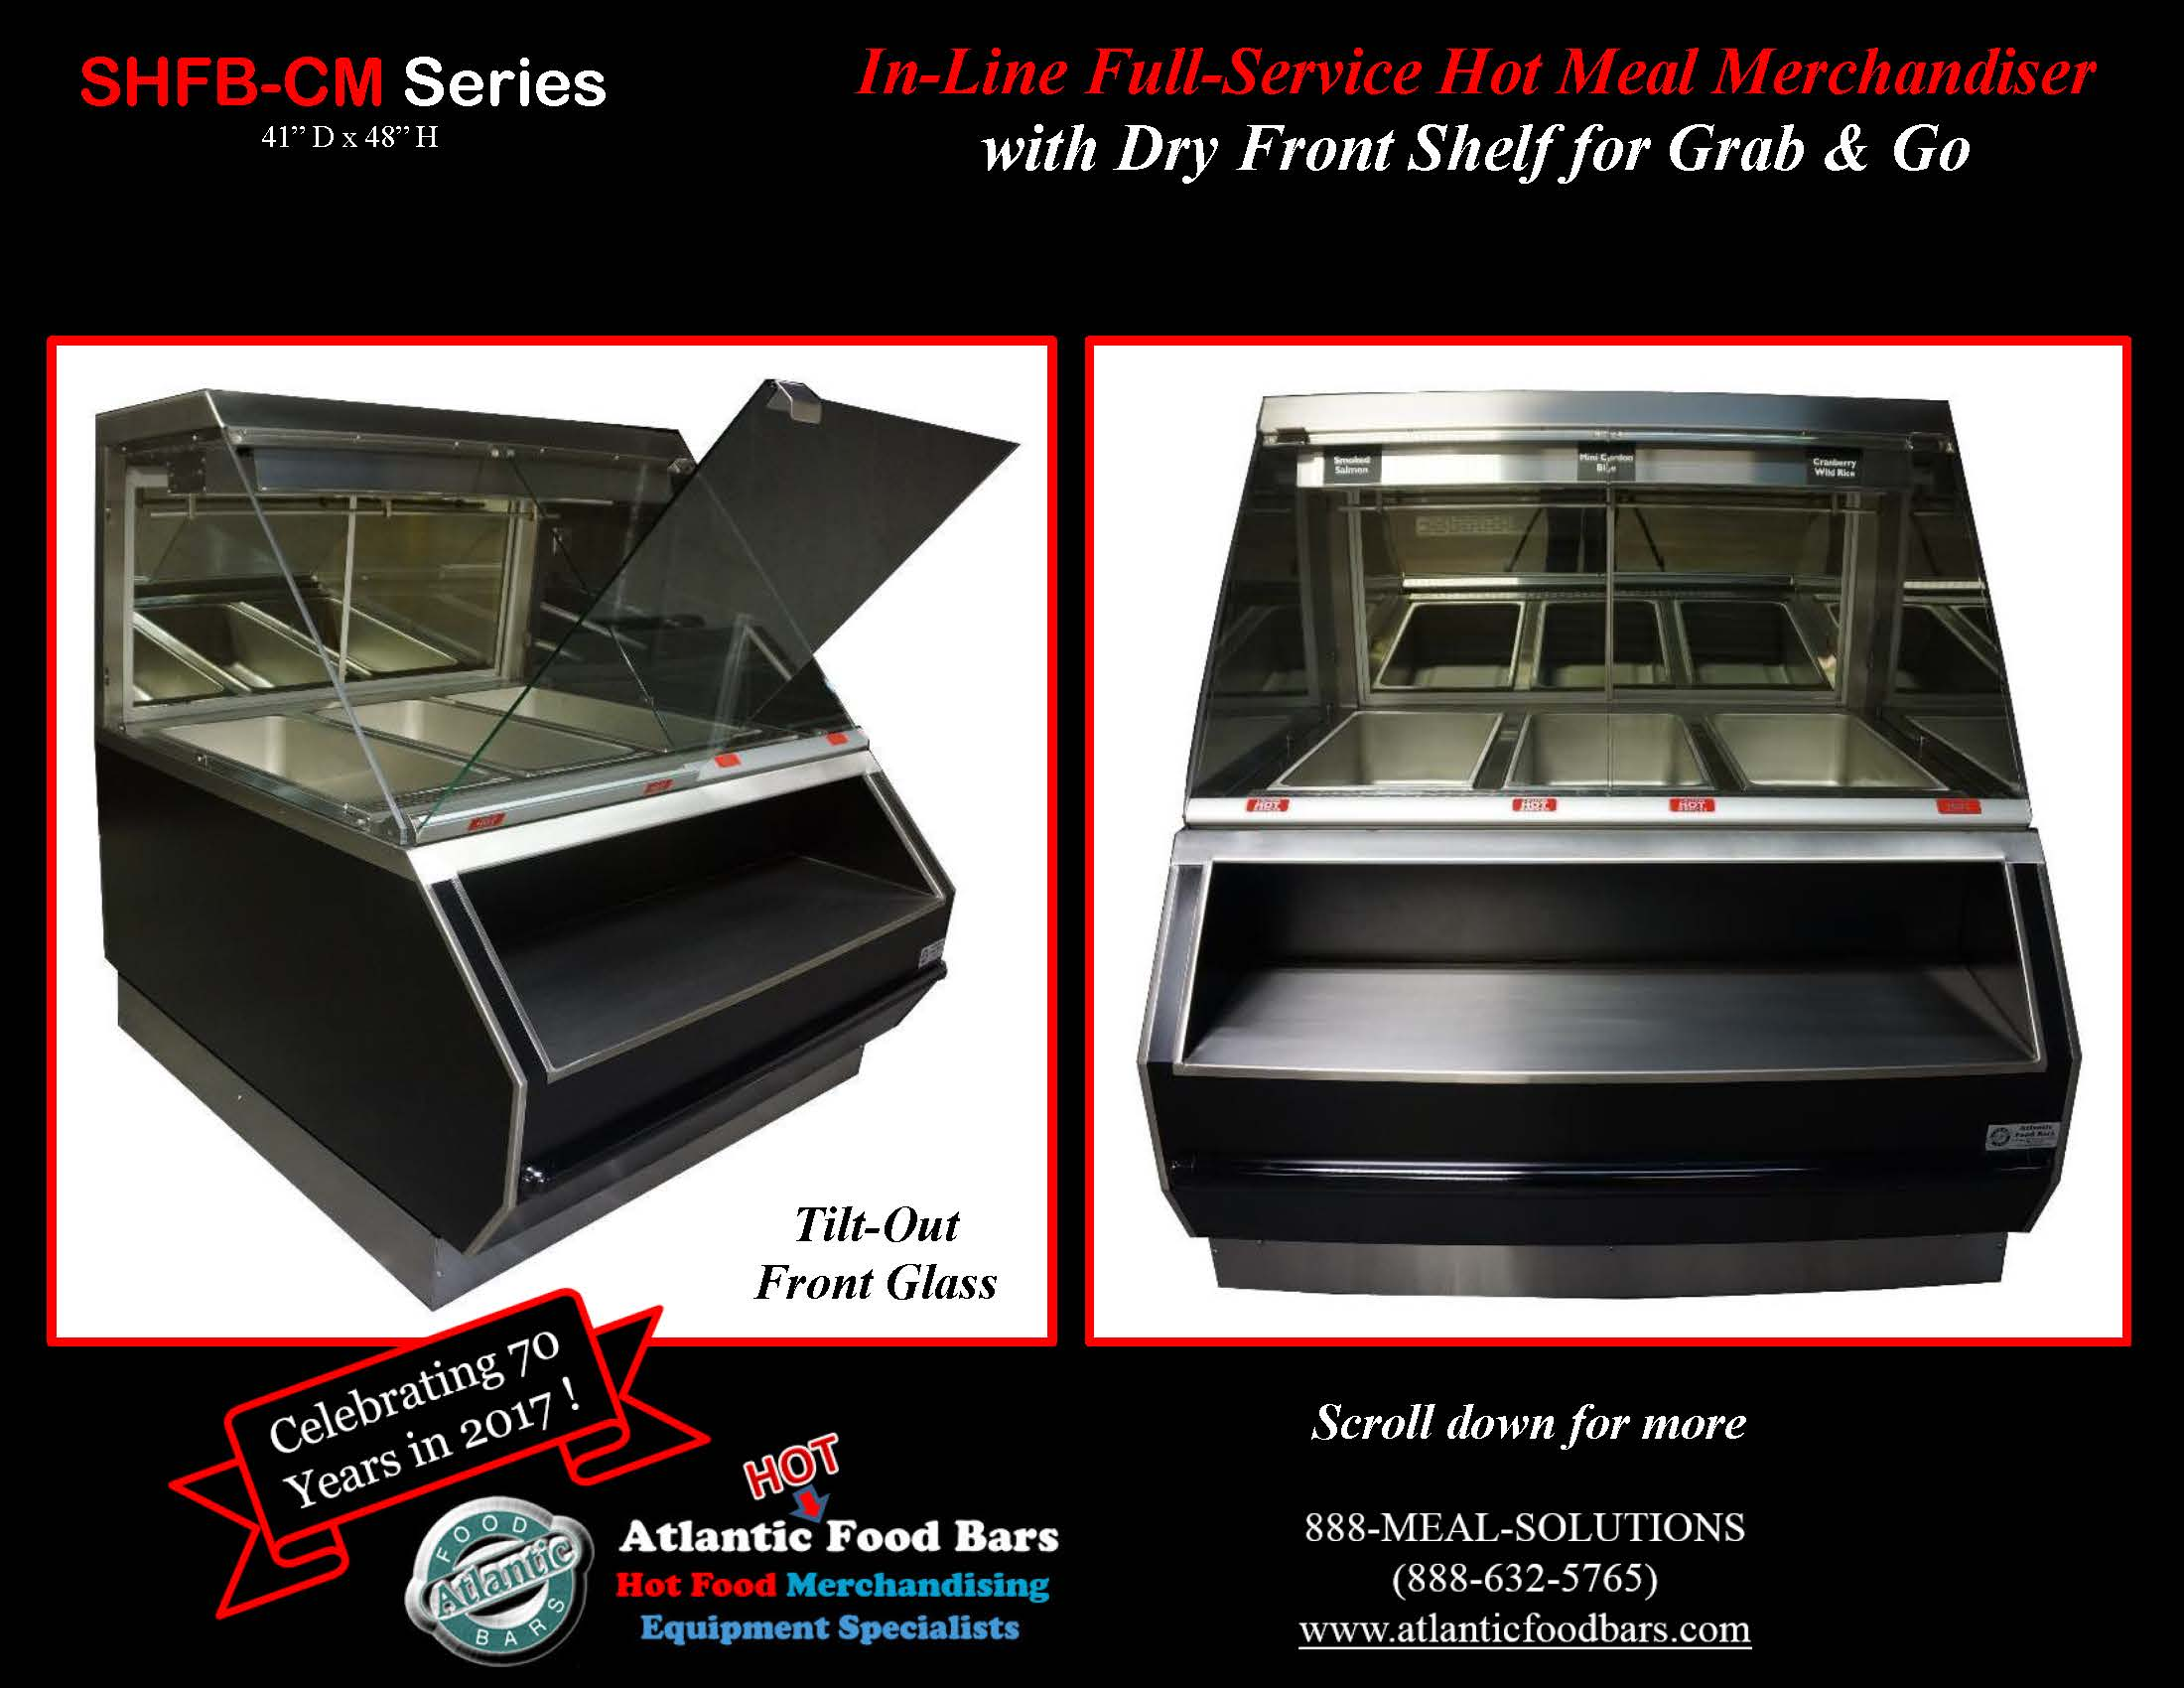 Atlantic Food Bars - In-Line Full Service Hot Meal Merchandiser with Dry Front Shelf For Grab & Go Merchandising -SHFB-CM